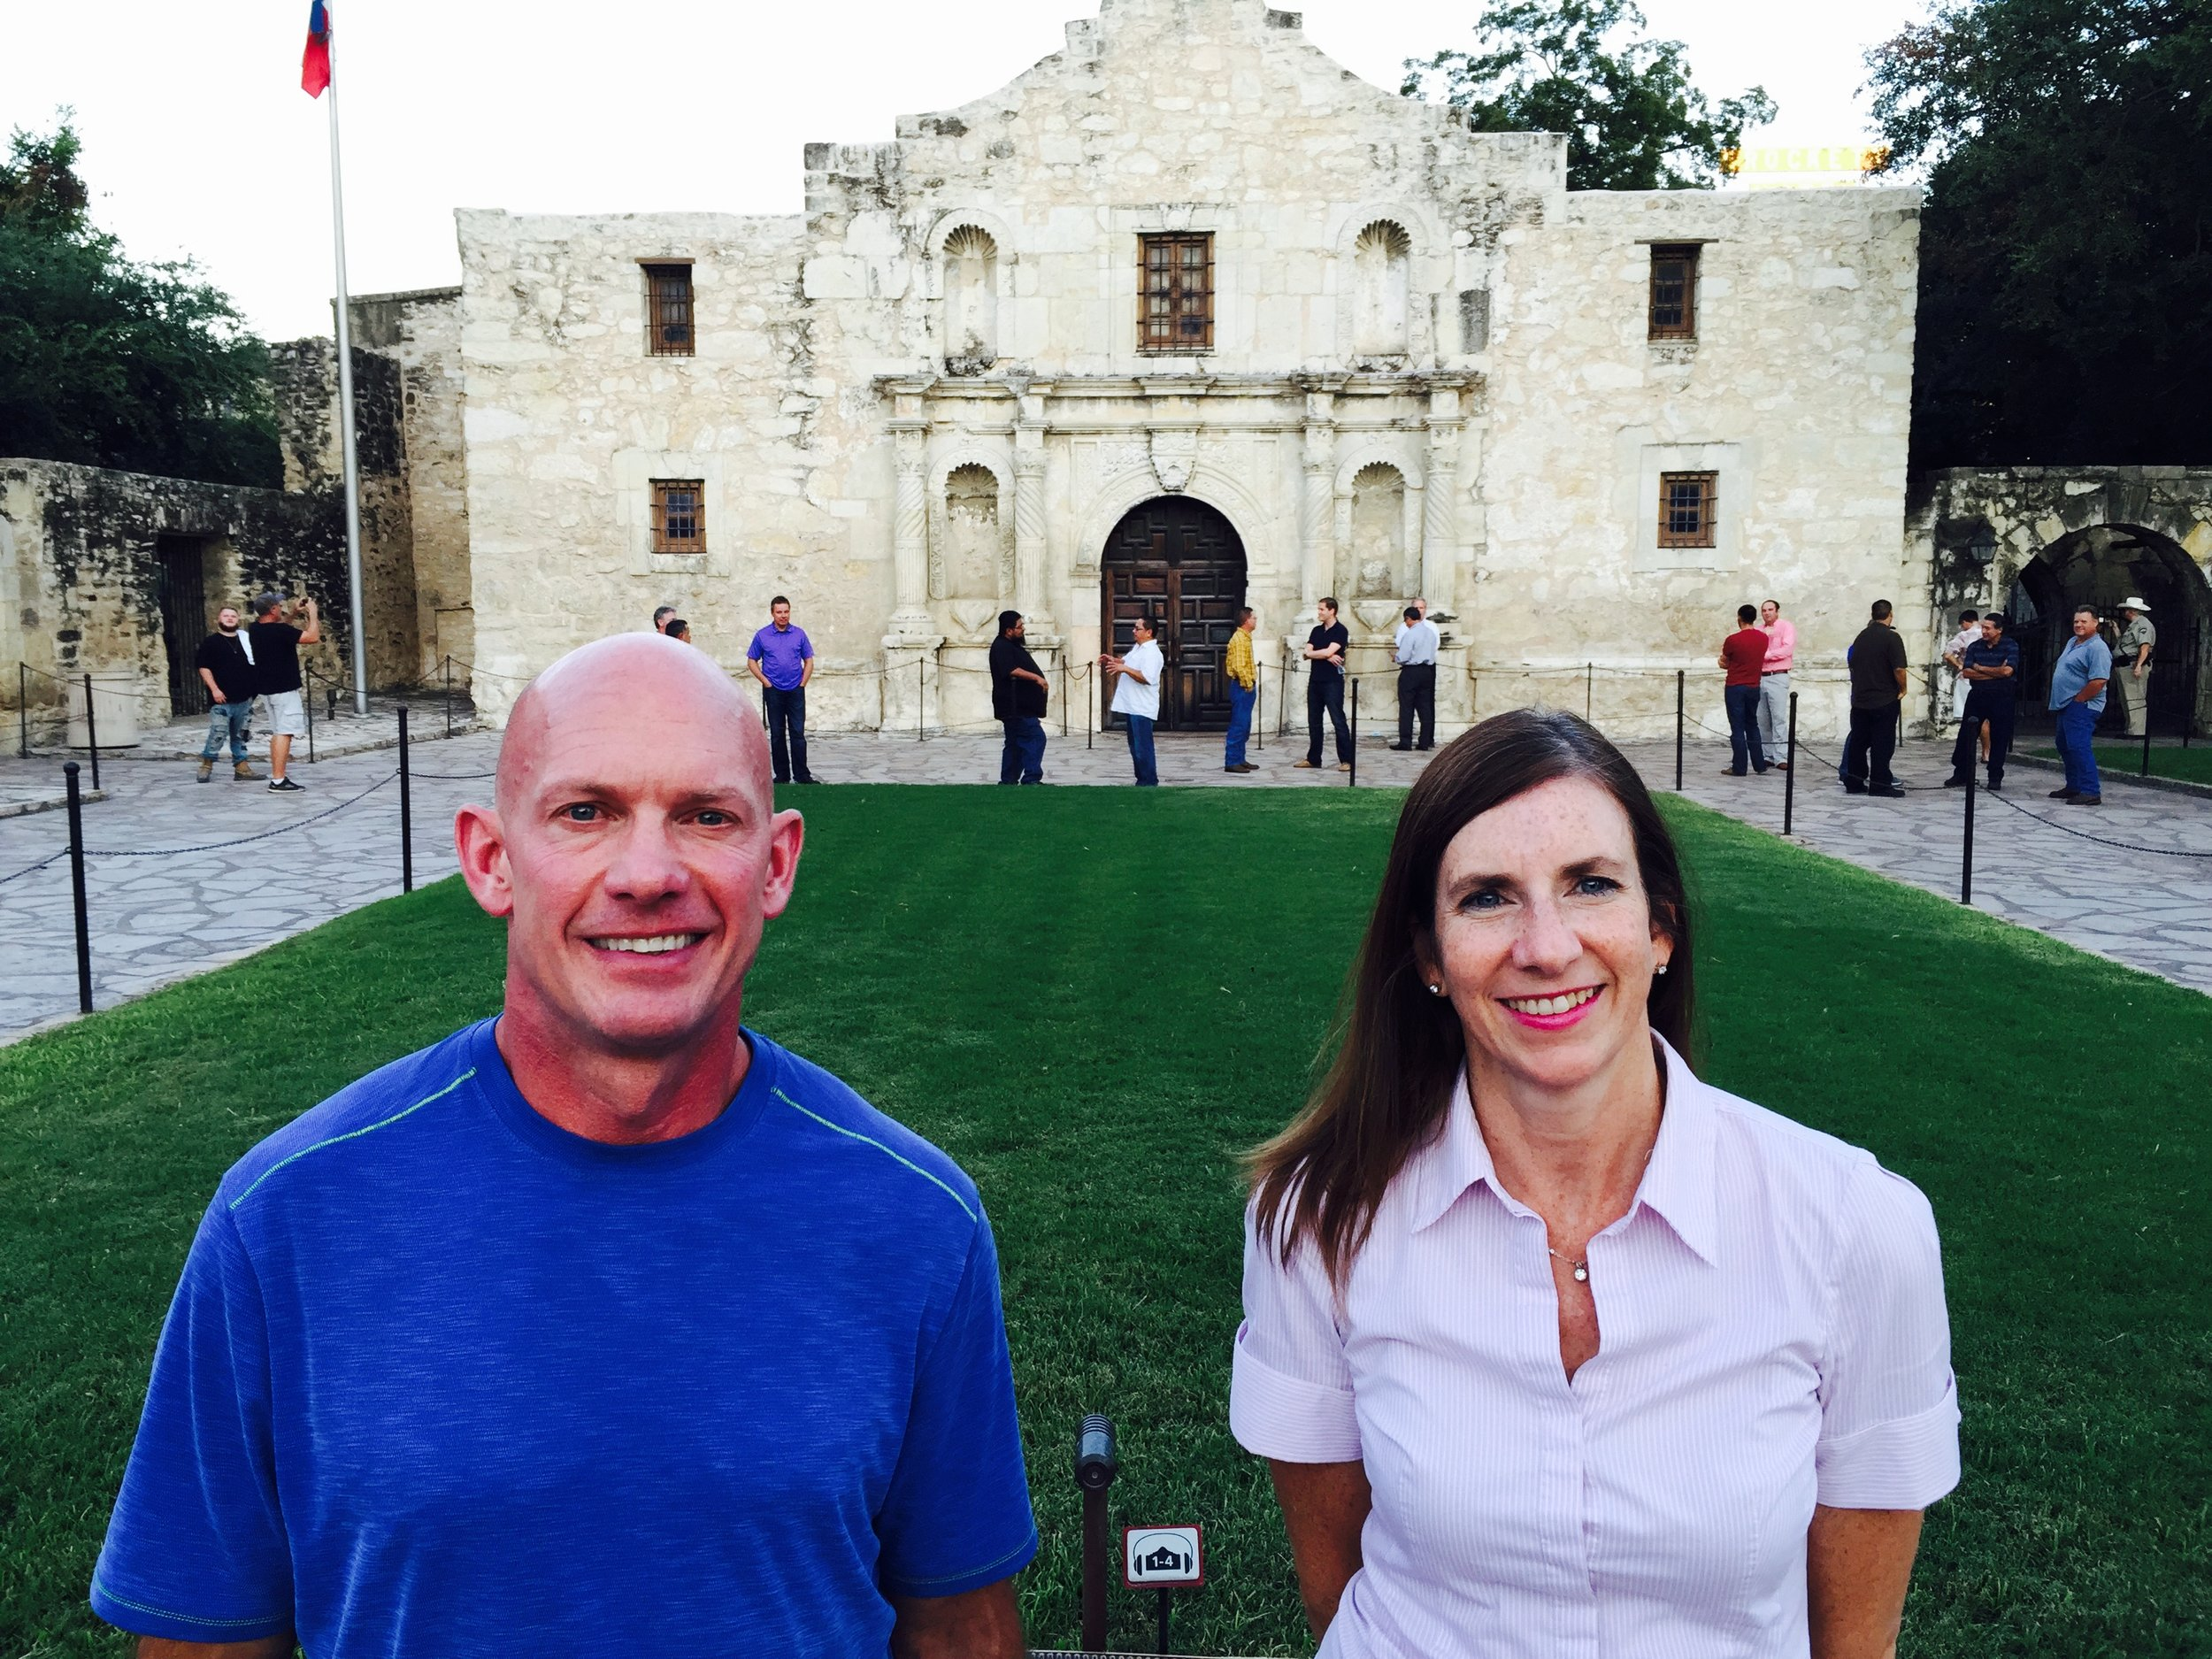 Brent Bauer and Yvonne Sabatini pose for a picture outside the historic Alamo in San Antonio Texas, where they were presenting at the  Henry Gonzalez Convention Center .